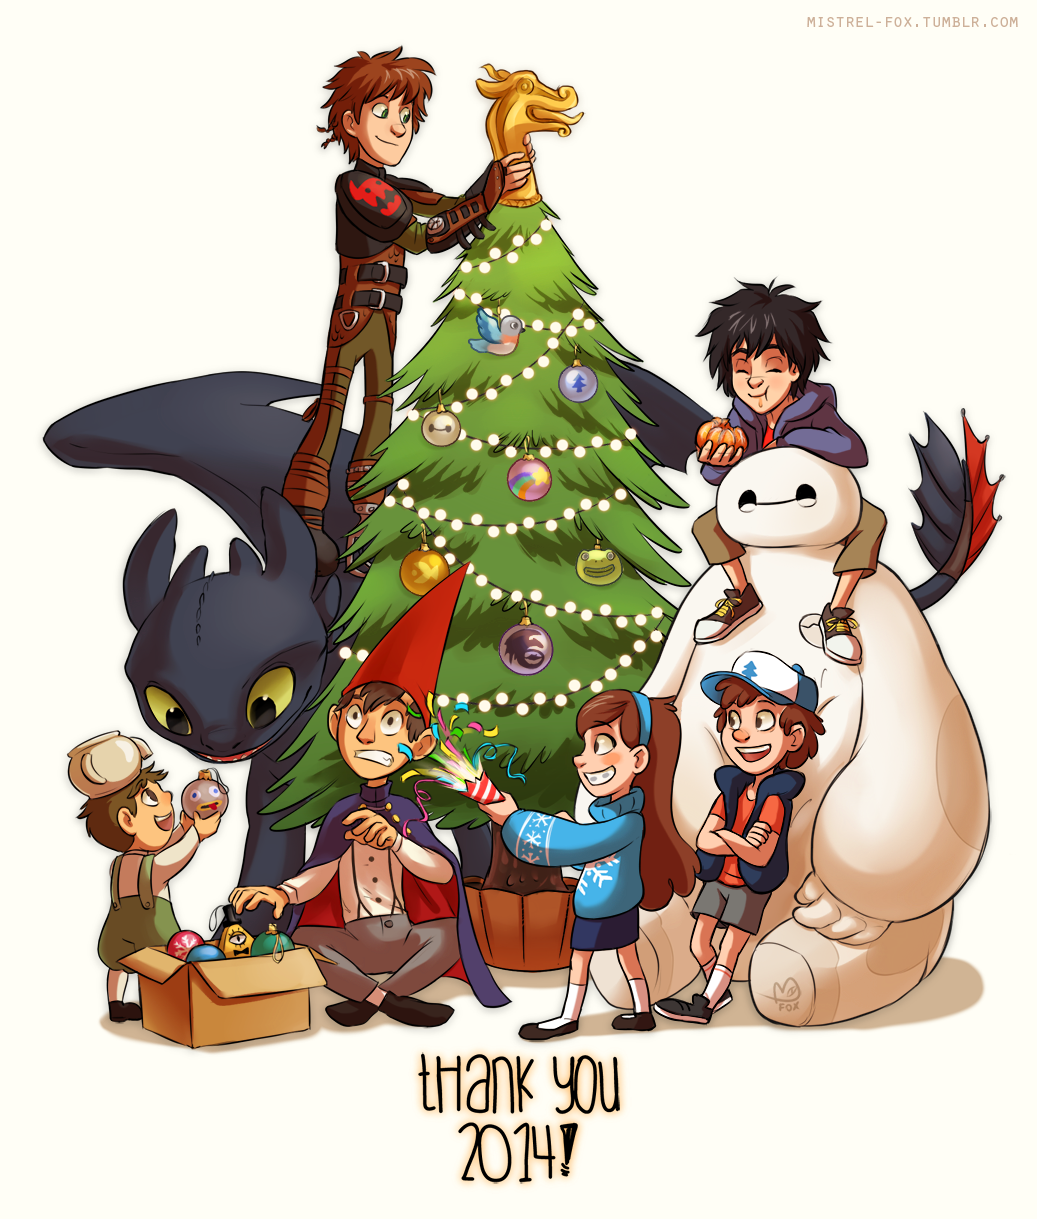 | HTTYD | Toothless | Hiccups | Big Hero 6 | Baymax | Hiro | OTGW | Greg | Wirt | Gravity Falls | Mabel | Dipper